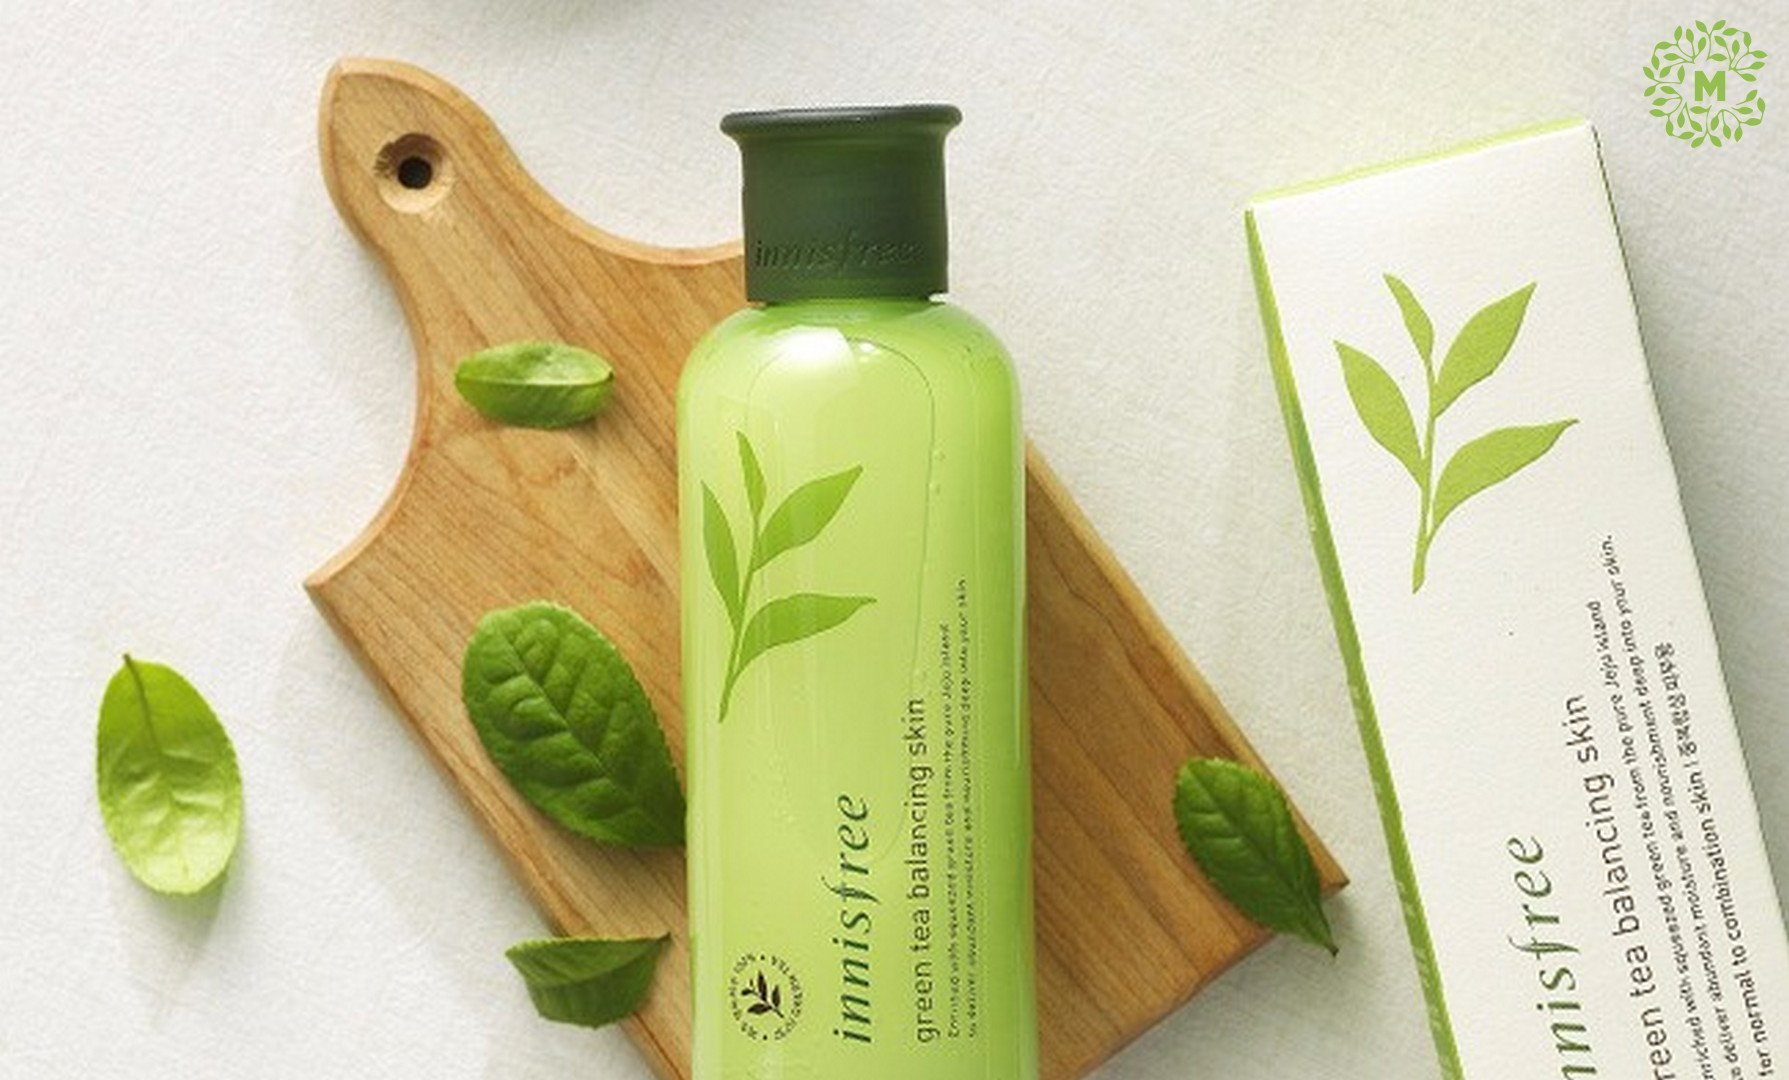 Toner innisfree green tea